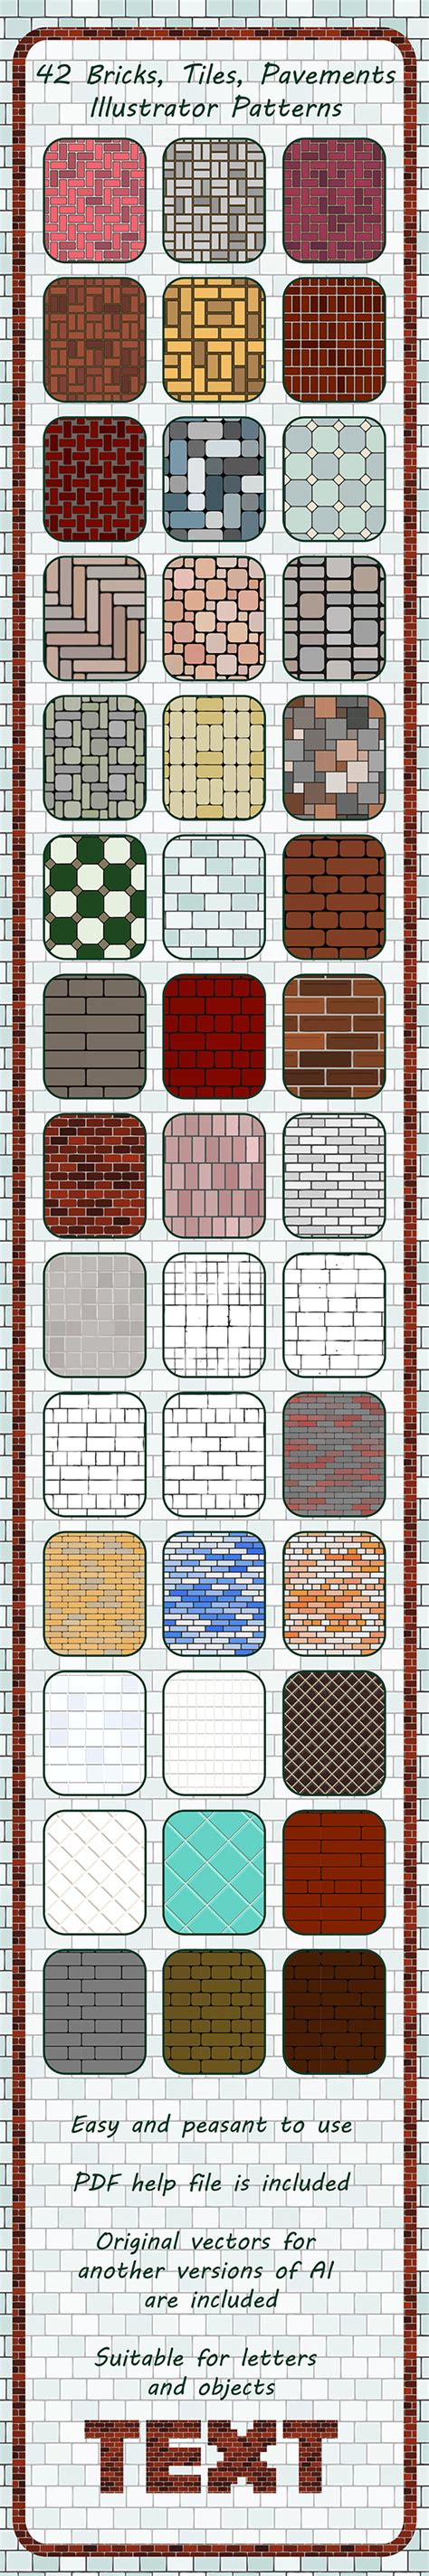 illustrator pattern move tile with art 42 bricks tiles pavements seamless adobe illustrator